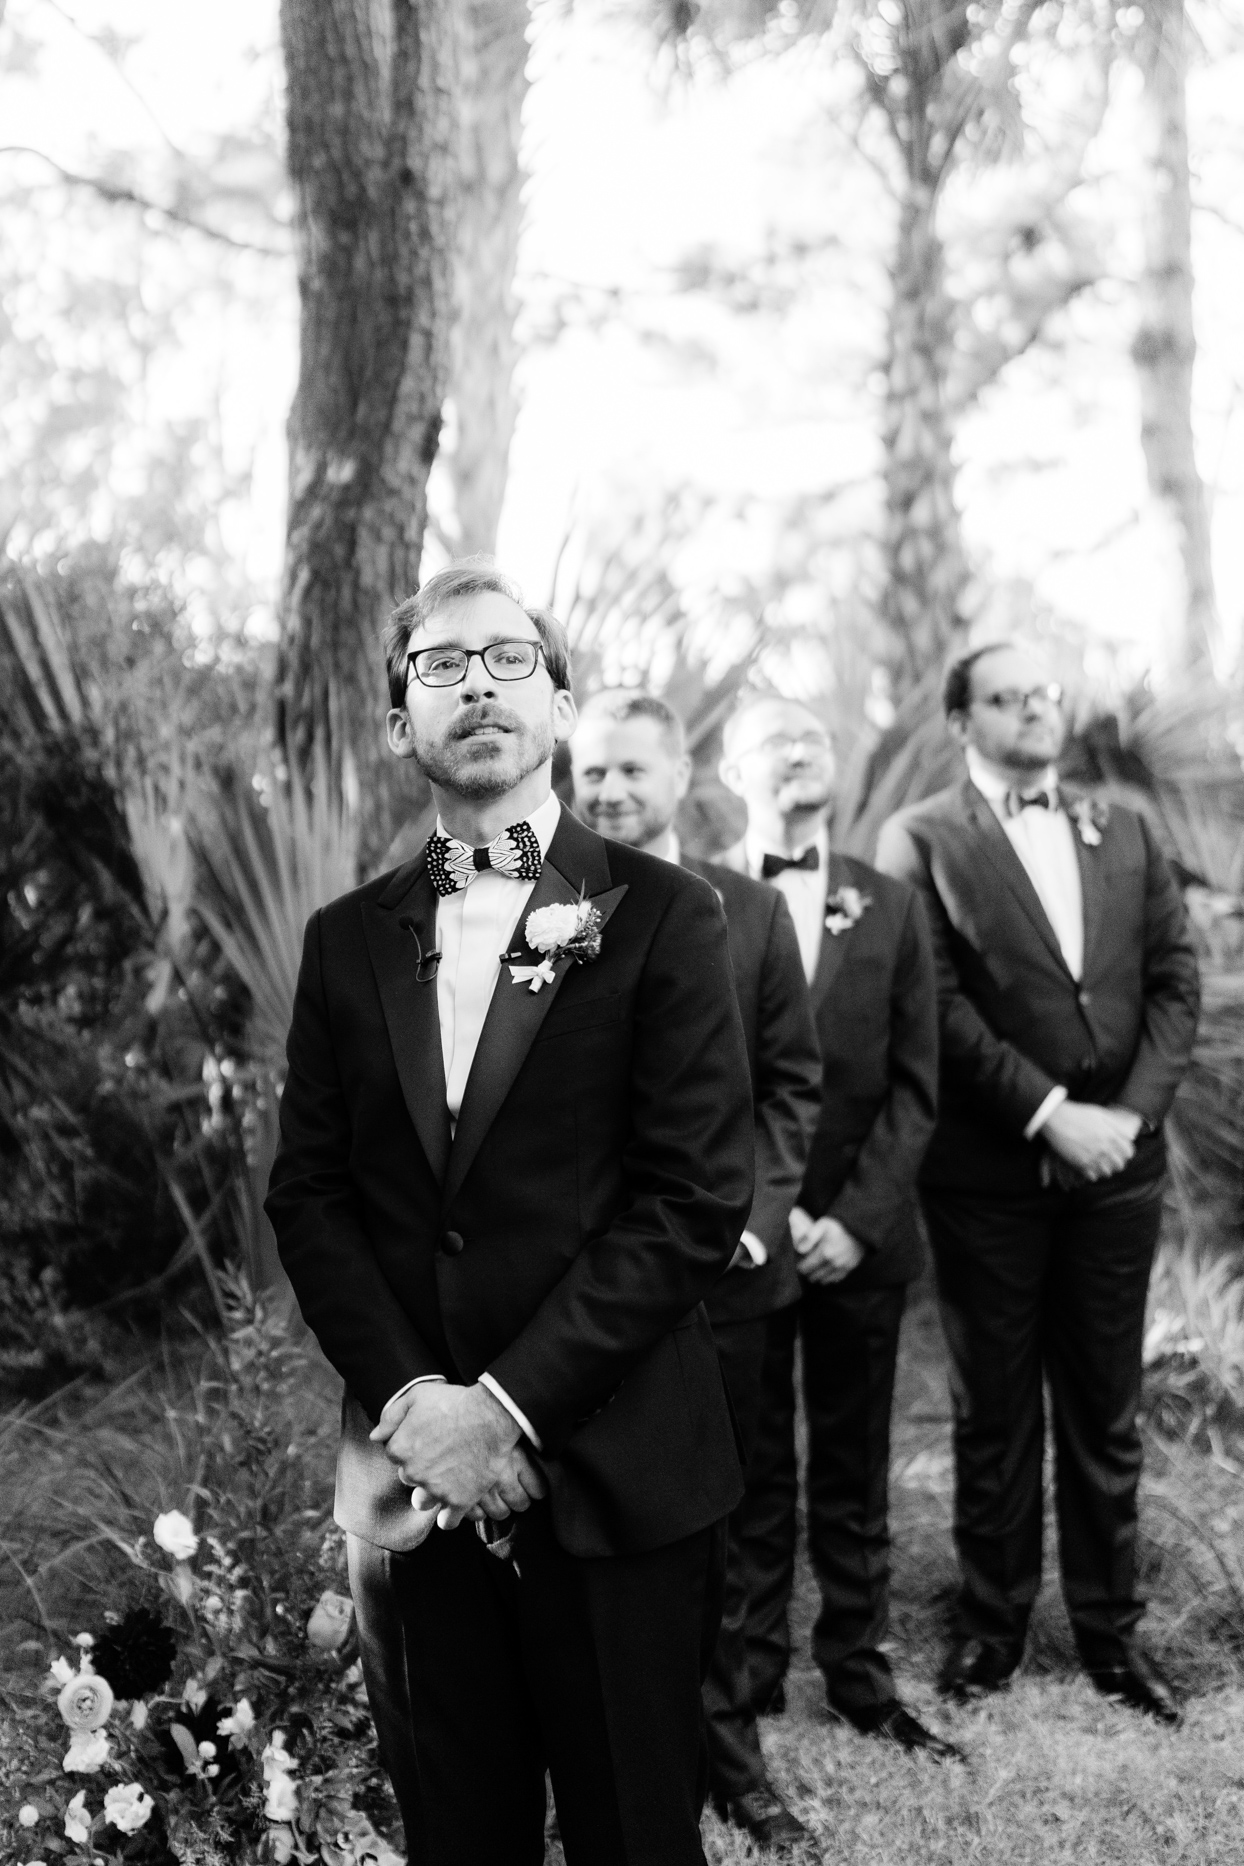 groomsmen in black suits staggered portrait in the forest